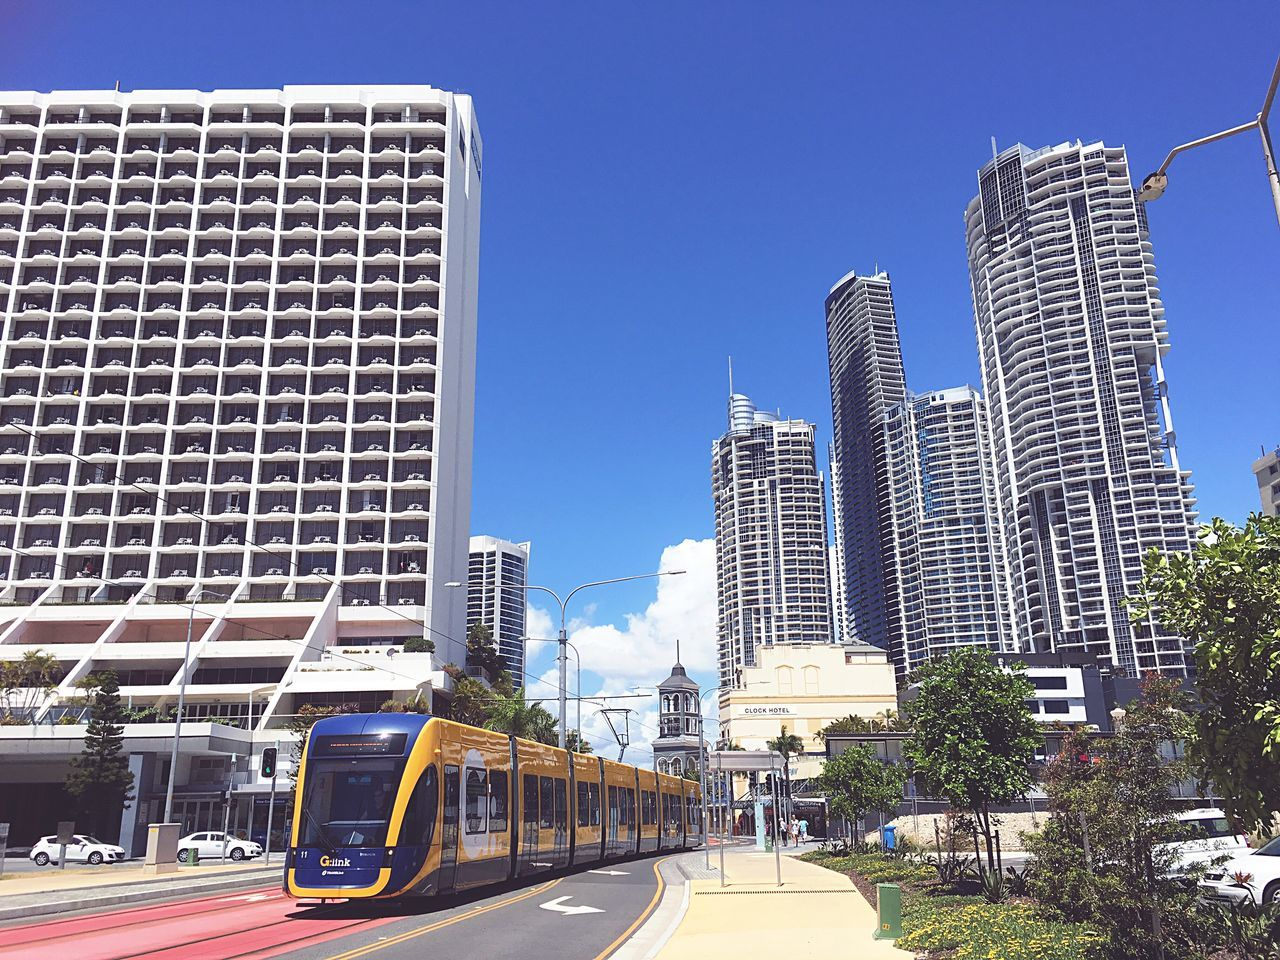 Gold Coast Architecture City Building Exterior Built Structure Transportation Tower Outdoors Road No People Sky Clear Sky Cityscape City City Life Architecture Adapted To The City